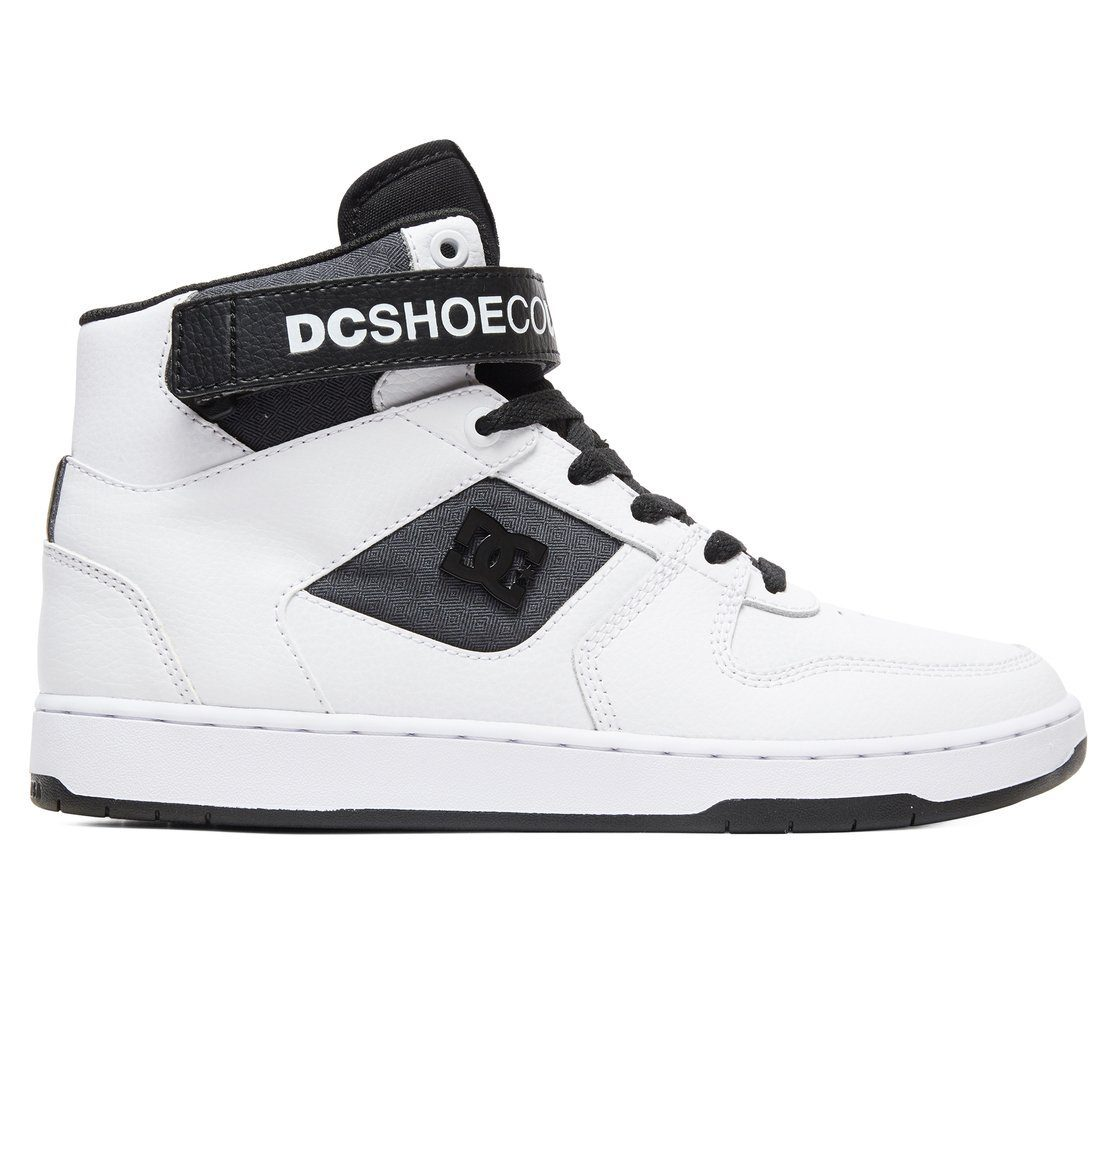 Sneaker KaufenOtto Shoes Dc Se« »pensford Online 0OwvmyN8nP